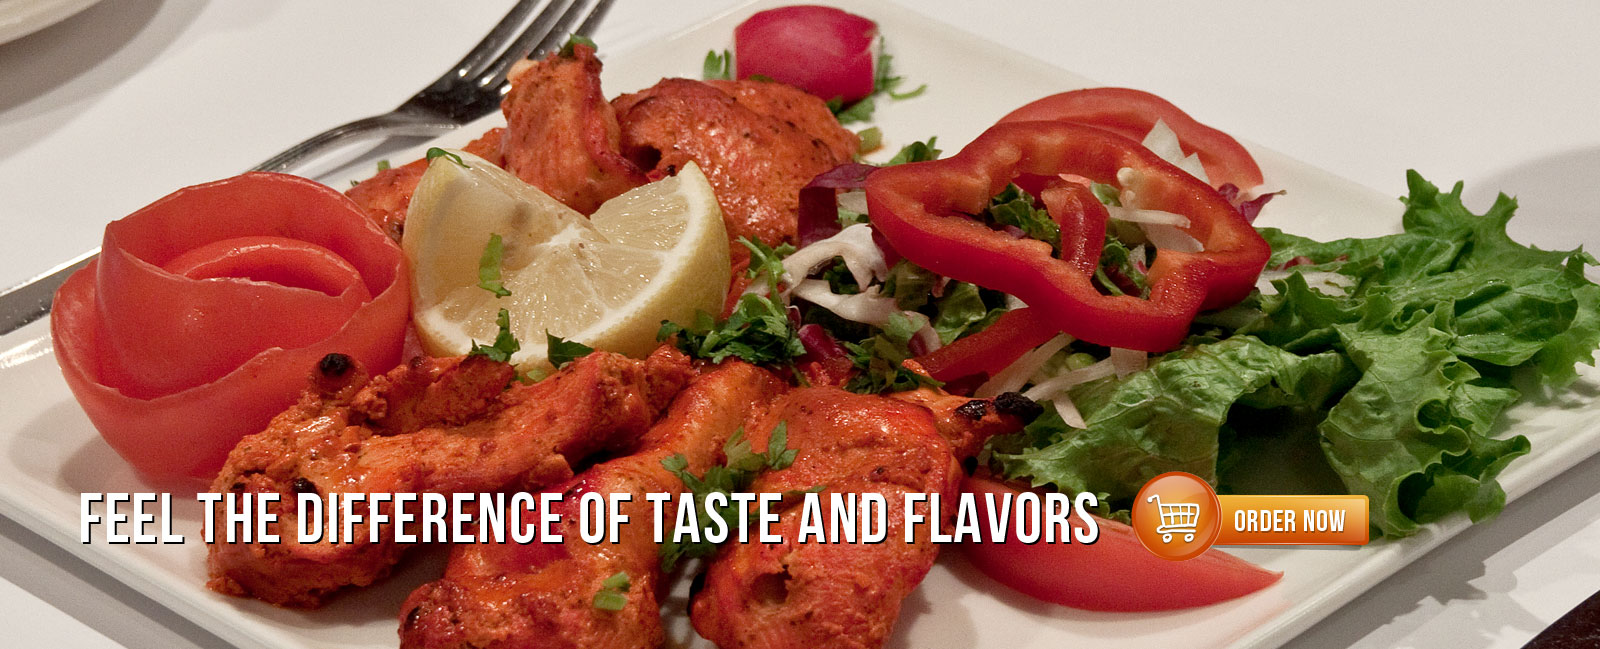 Food Nearby Manhattan Valley Best Indian Food Order Online Nearby Broadway Ny